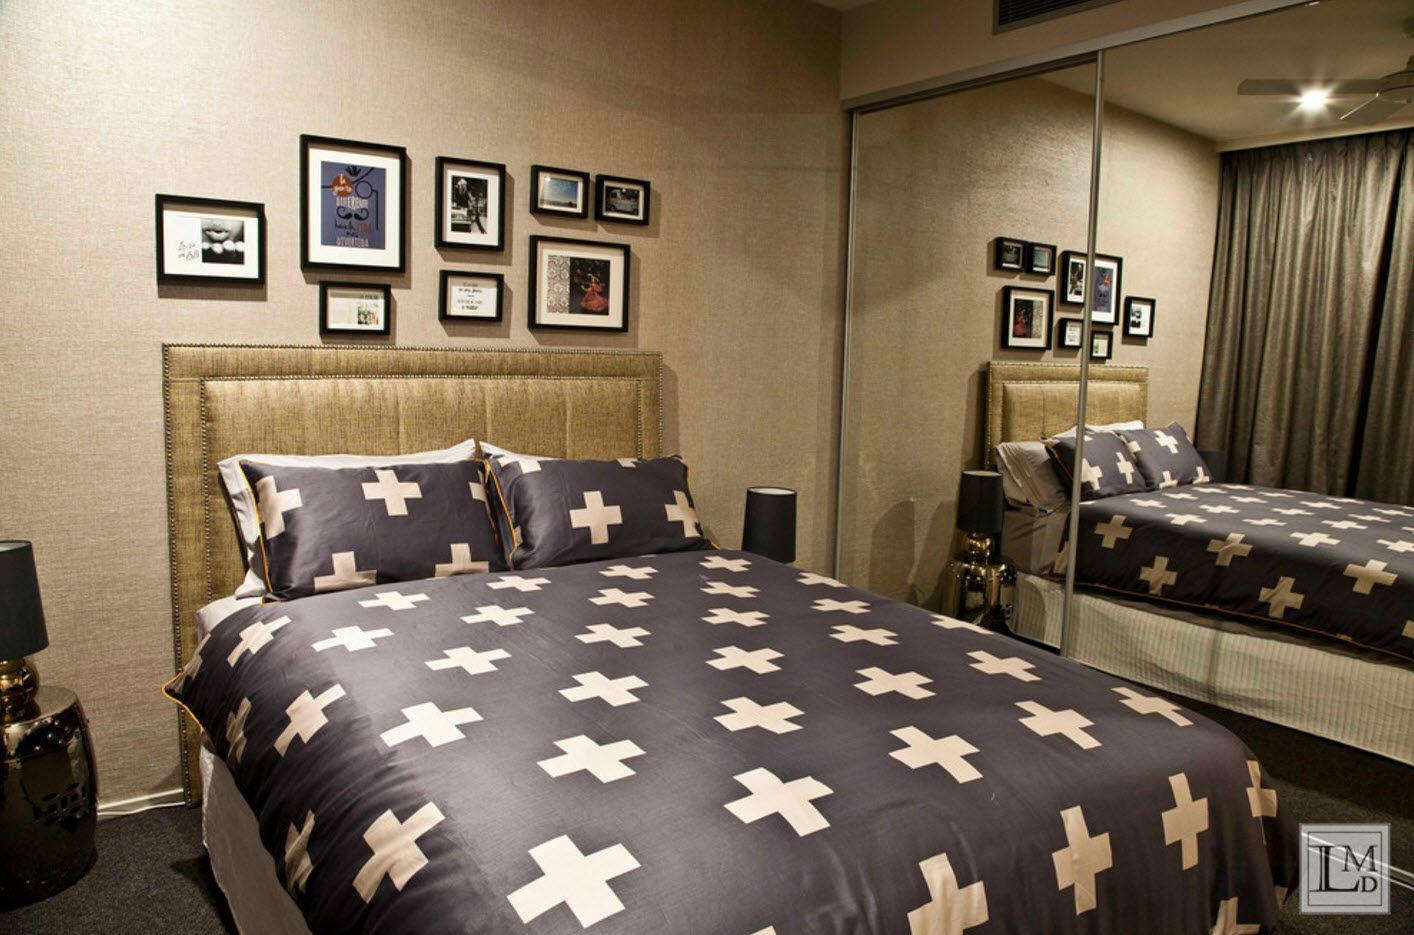 Bed linen for modern bedroom with pluses